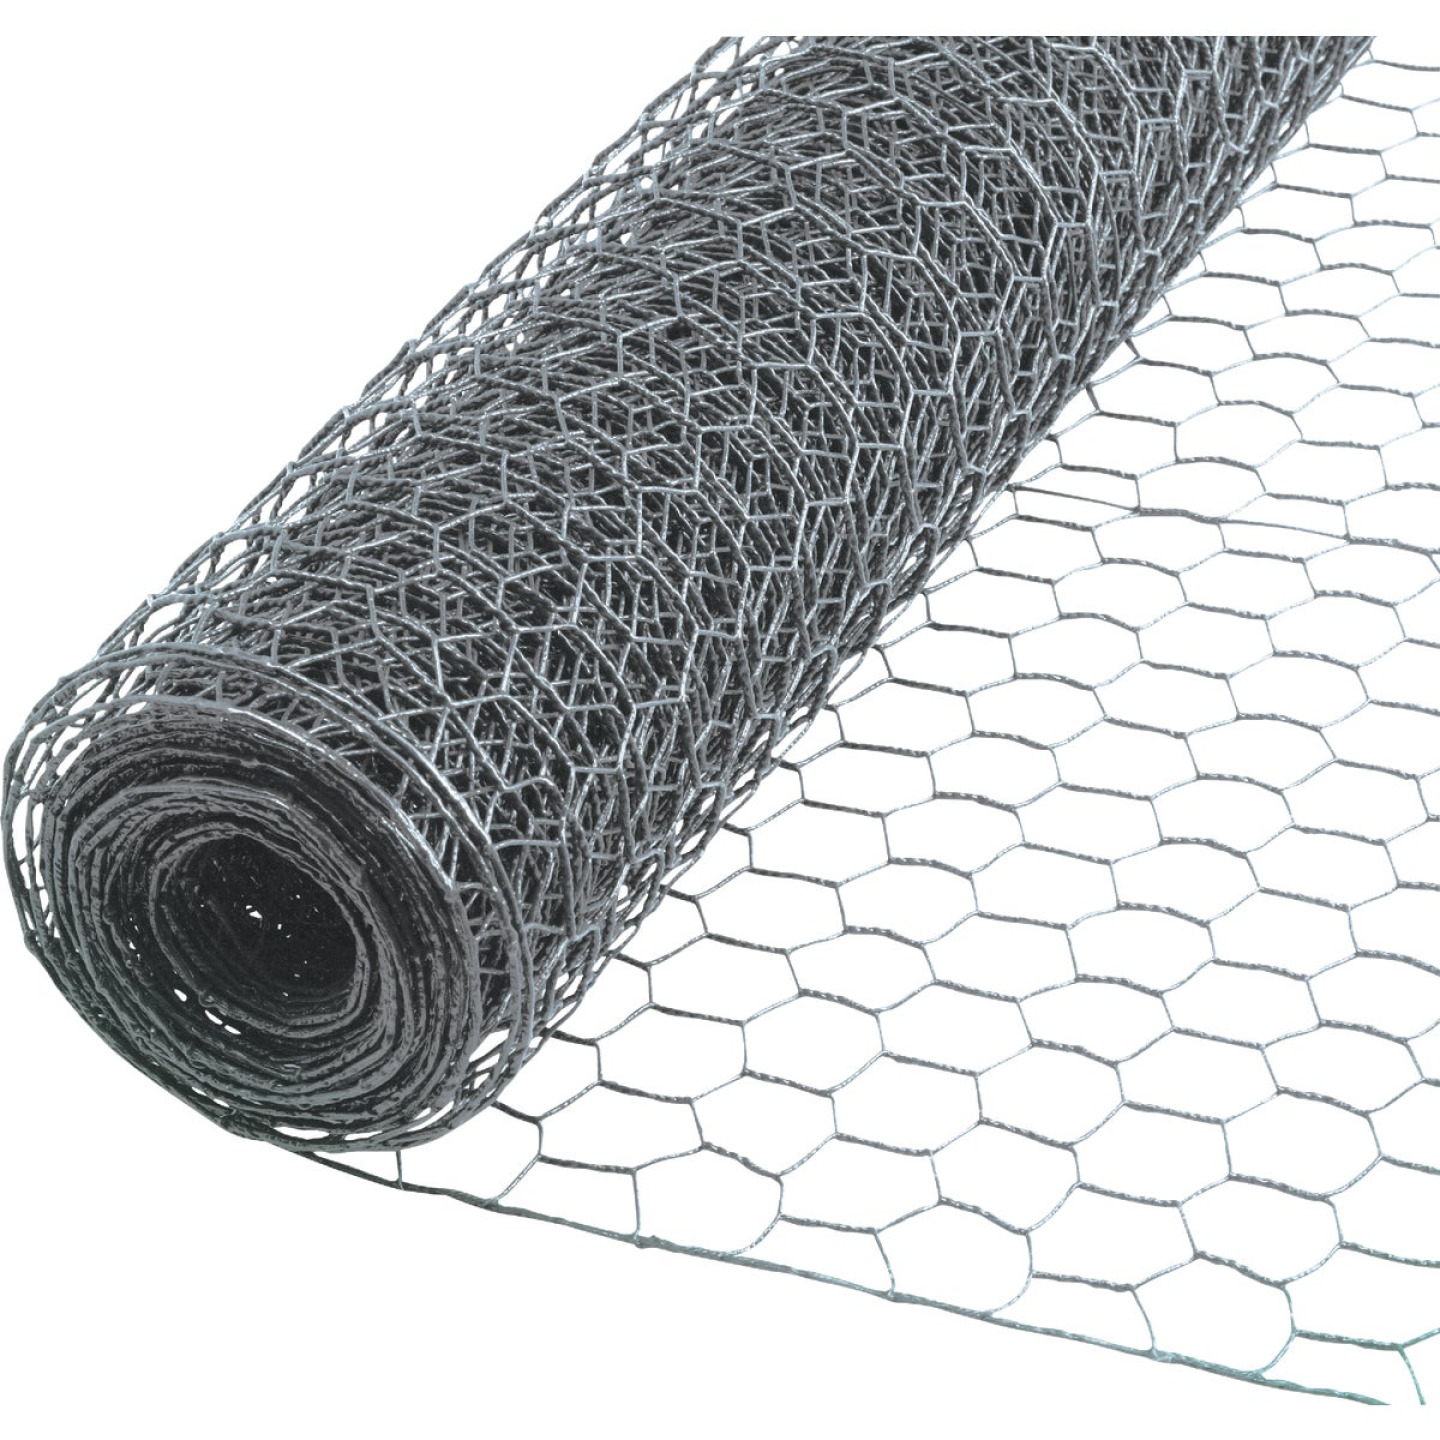 Do it 2 In. x 36 In. H. x 150 Ft. L. Hexagonal Wire Poultry Netting Image 1